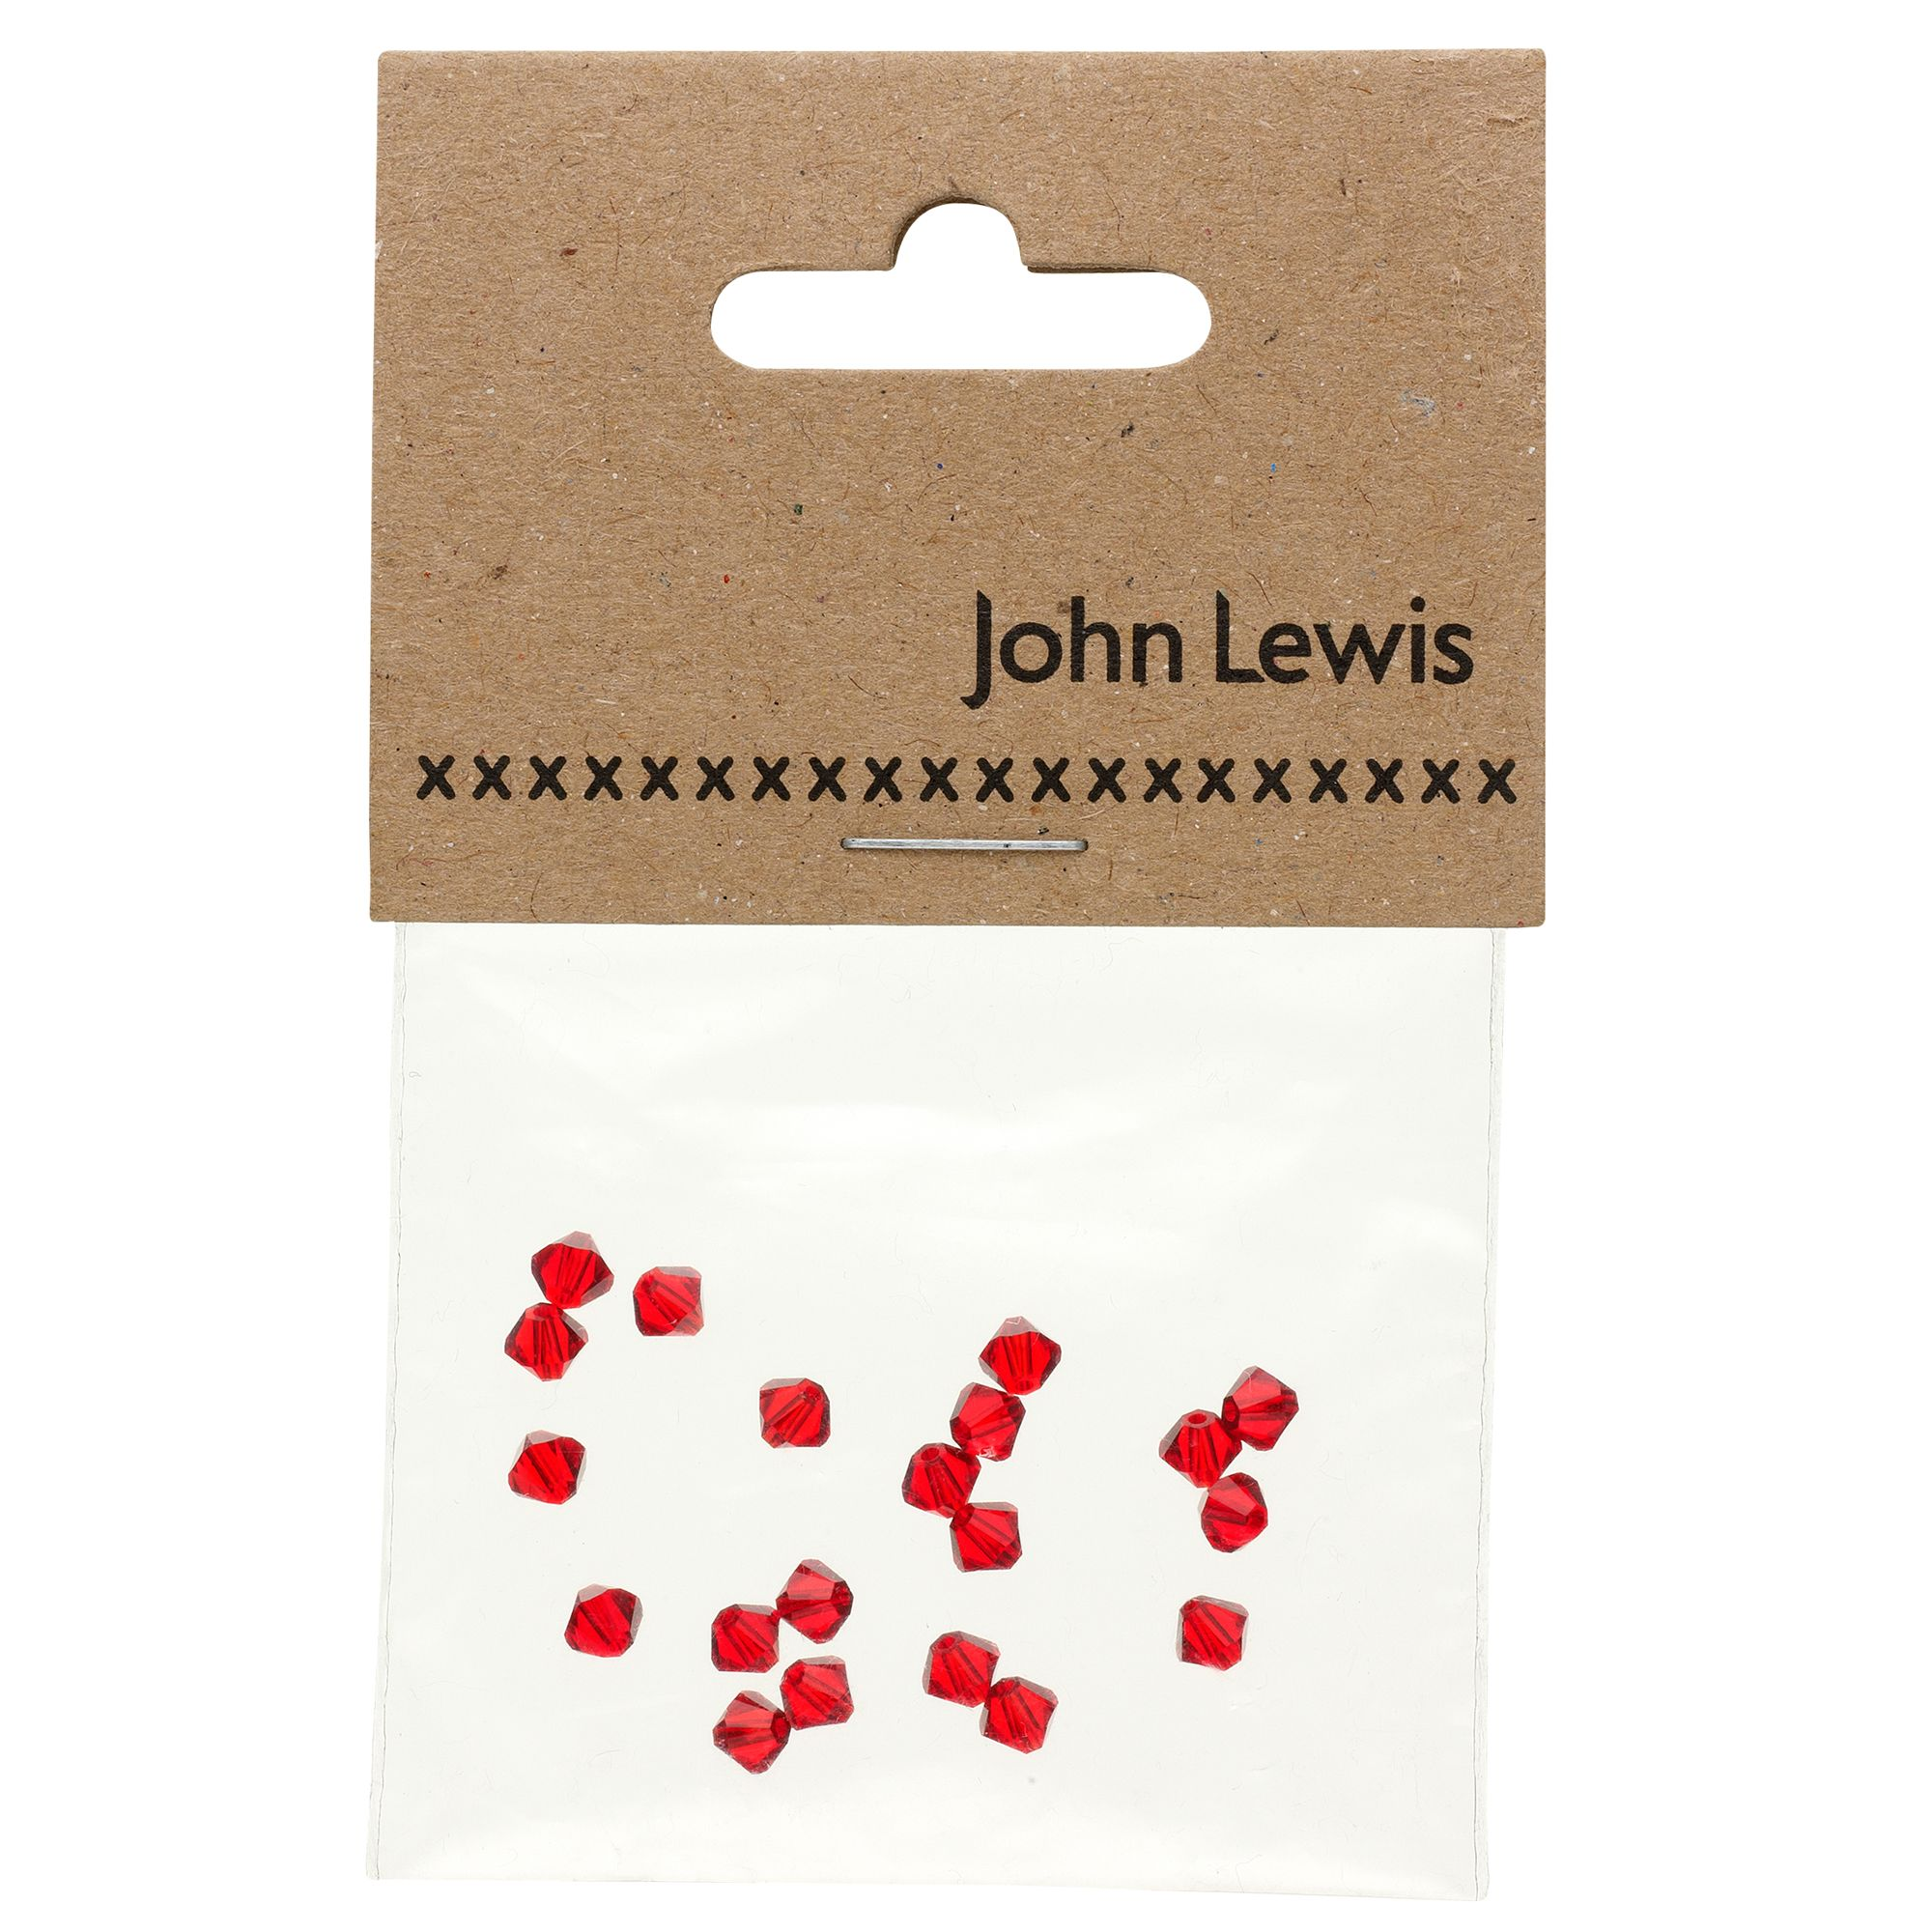 John Lewis Swarovski Xillion 4mm Crystals, Pack of 20, Light Siam